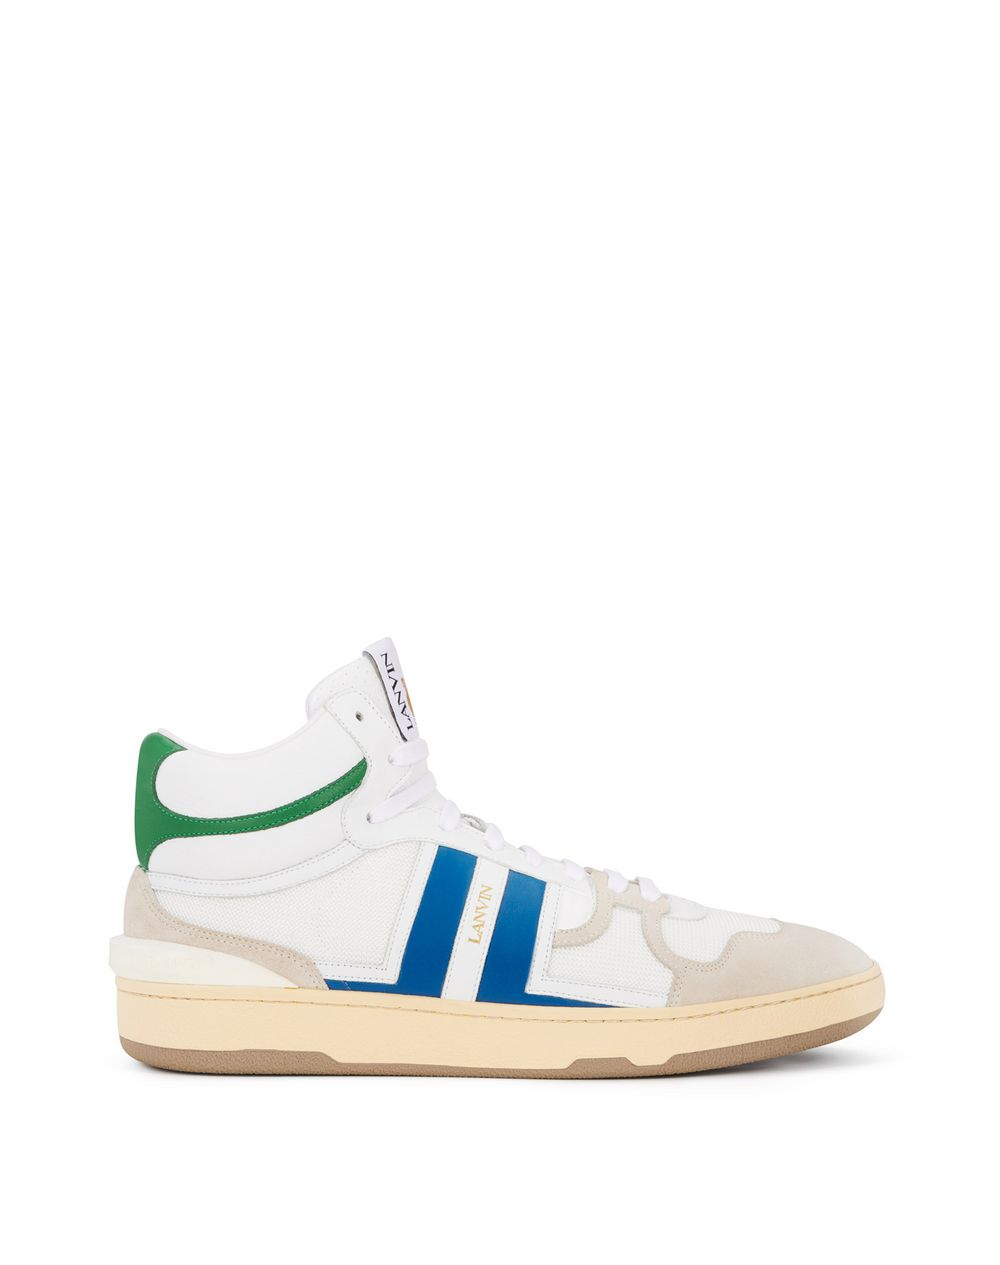 LEATHER CLAY HIGH-TOP TRAINERS - Lanvin